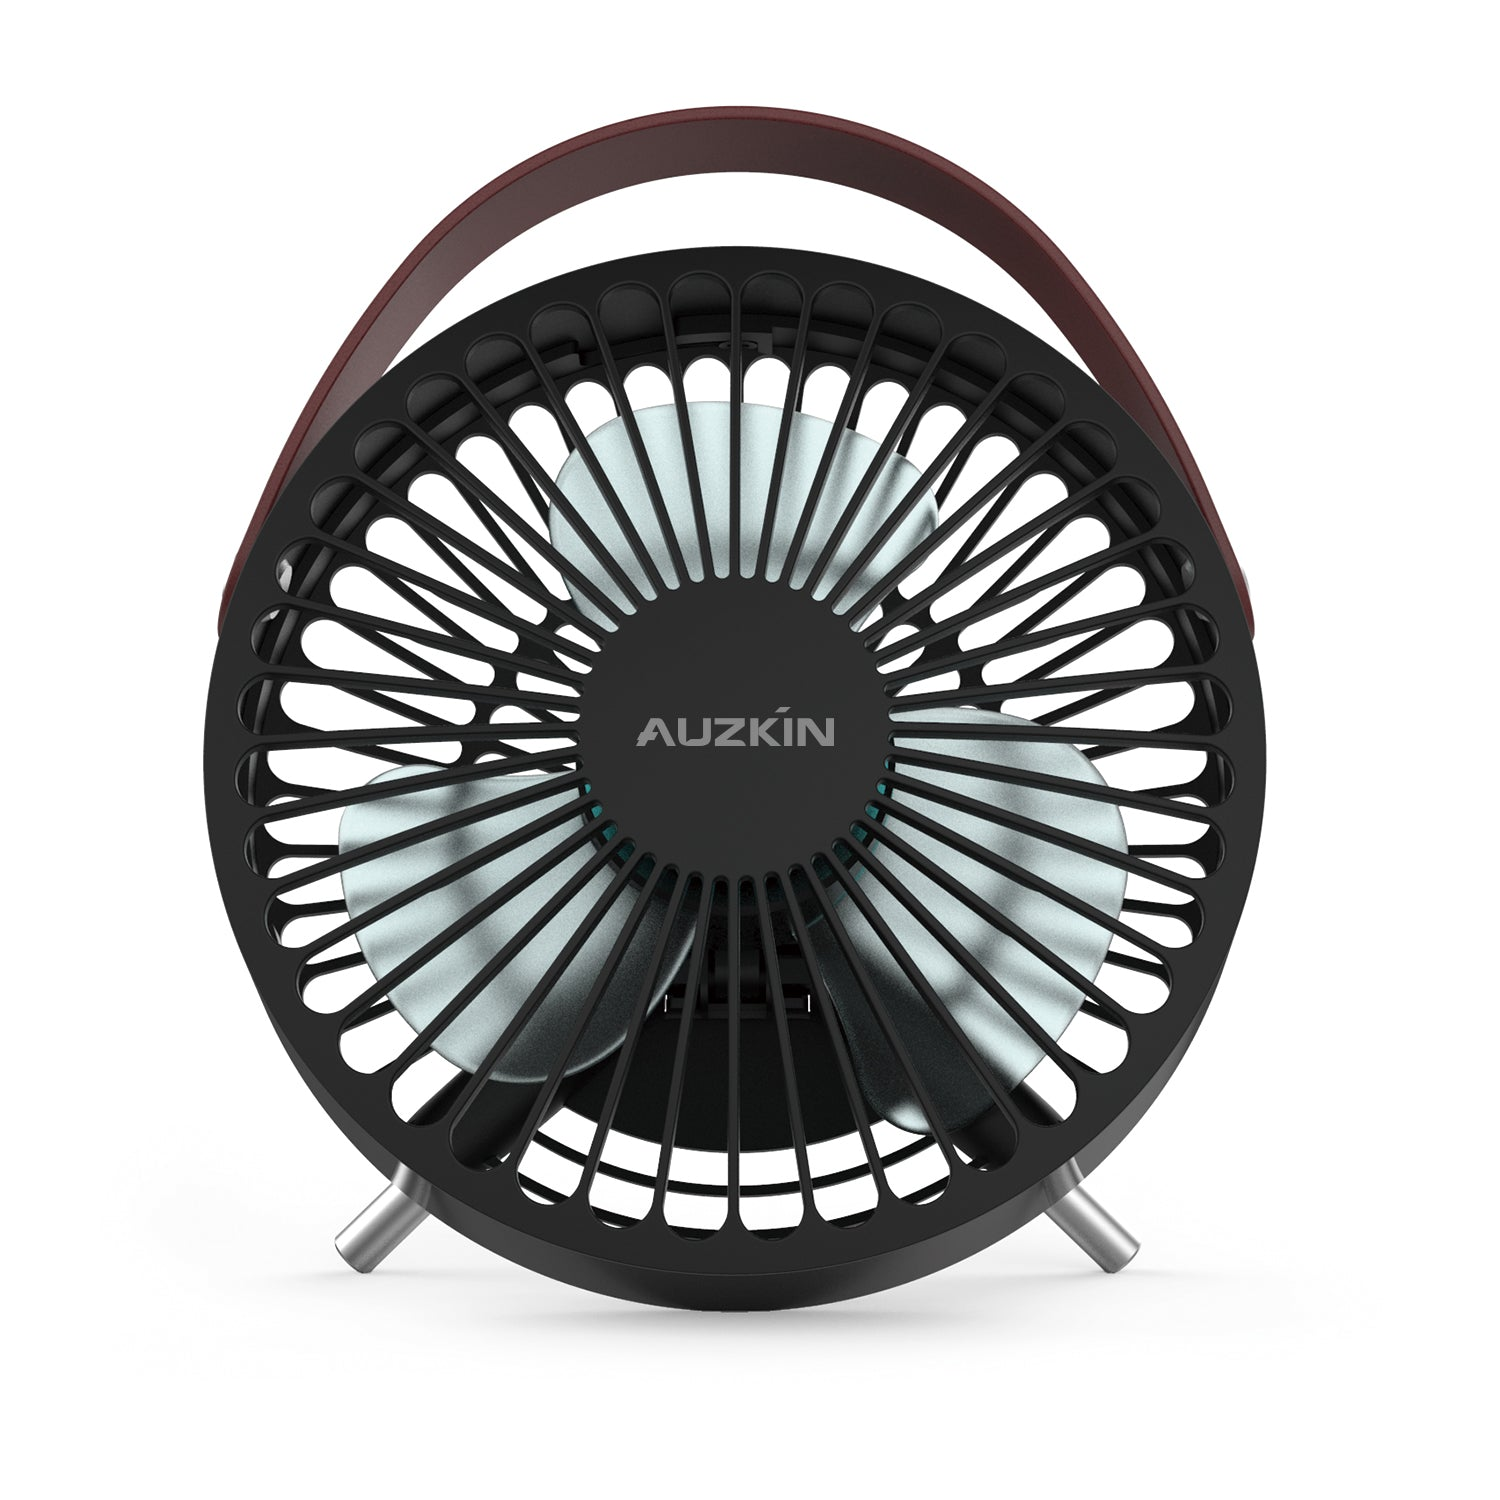 AUZKIN Small Personal USB Desk Fan,Portable Desktop Table Cooling Fan Powered by USB,Strong Wind,Quiet Operation,for Home Office Car Outdoor Travel